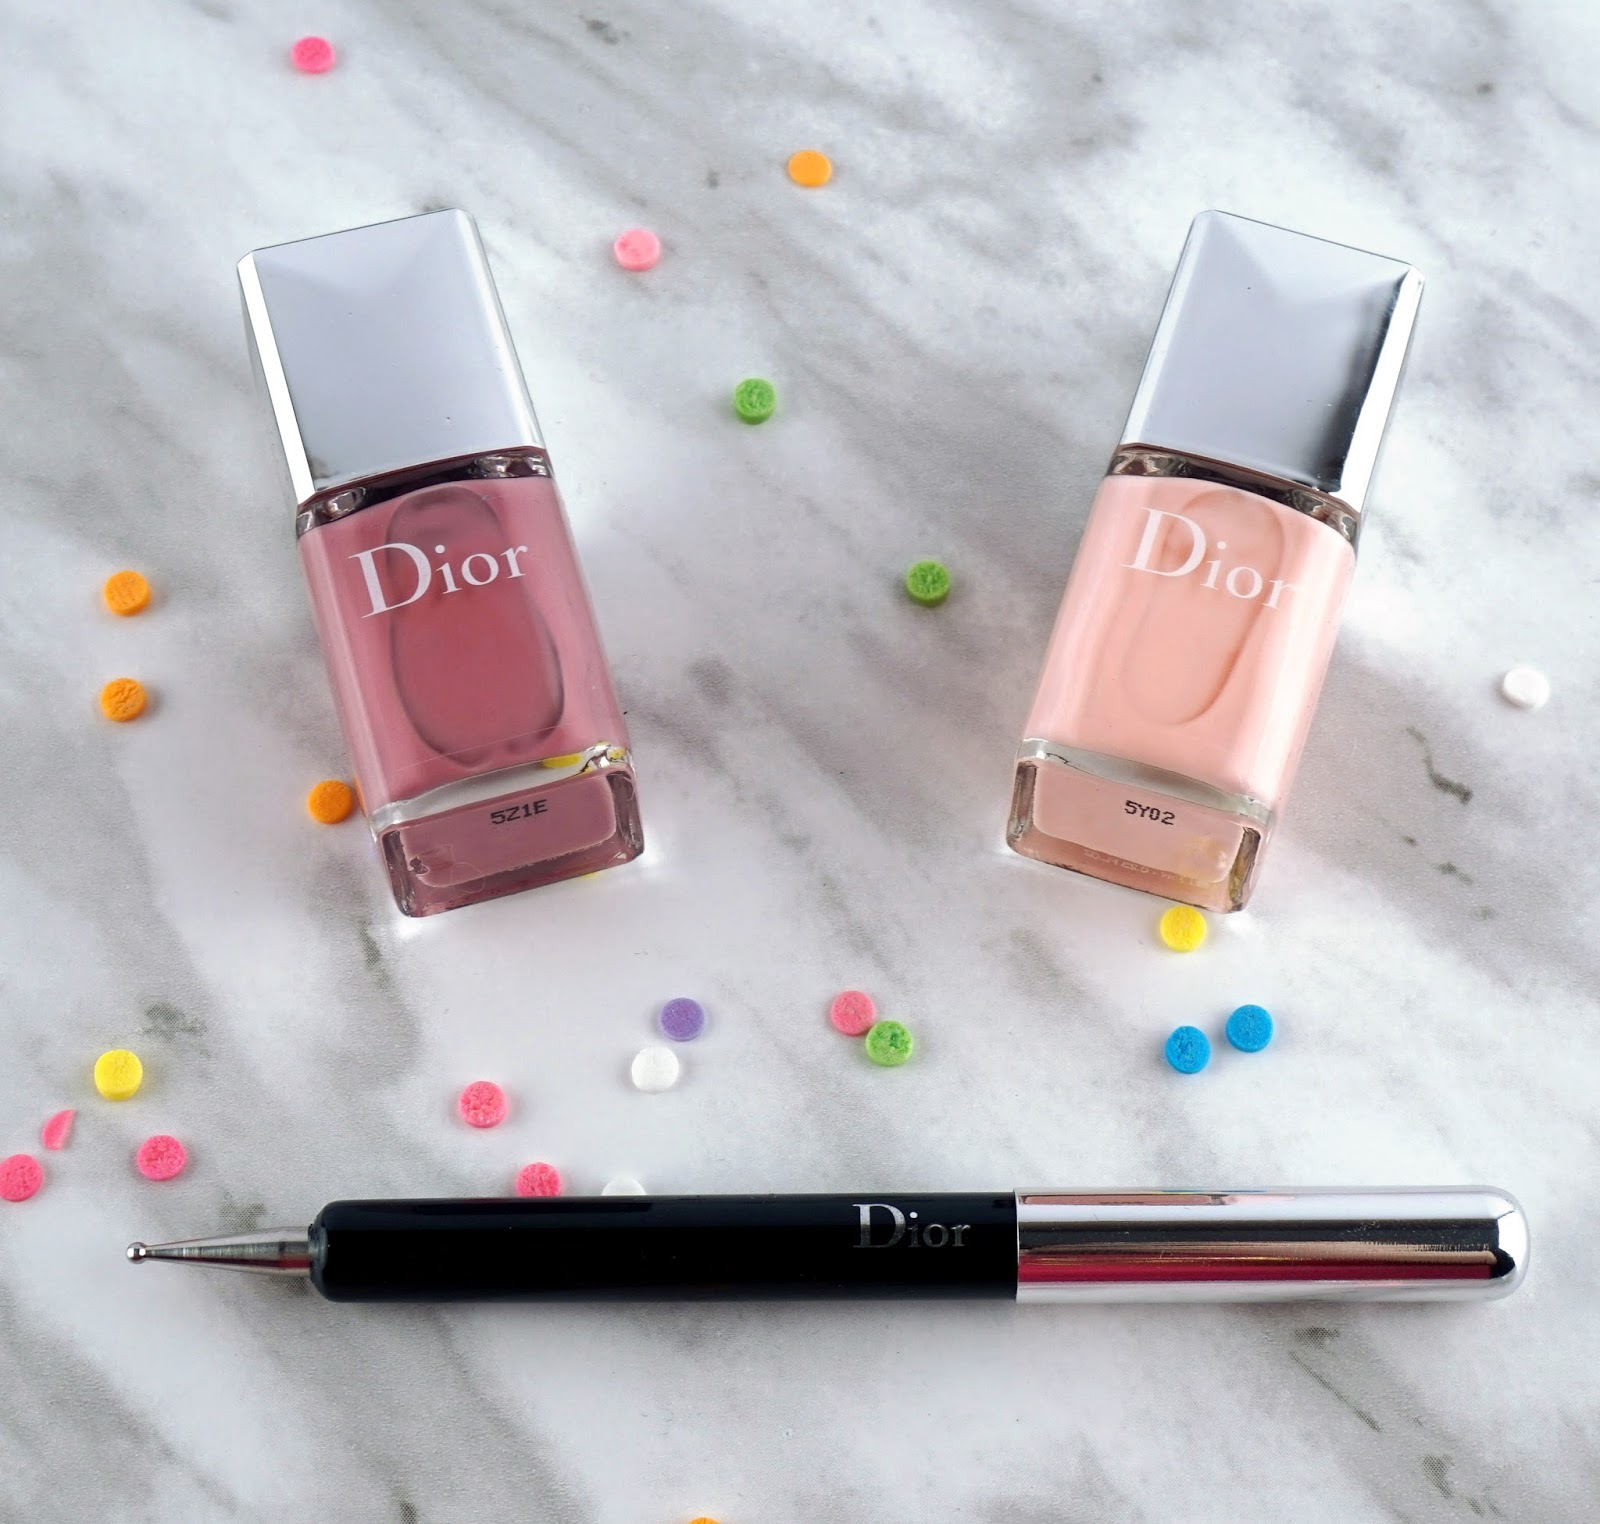 Dior Polka Dots Colour & Dots Manicure Kit Plumetis nail art review swatches